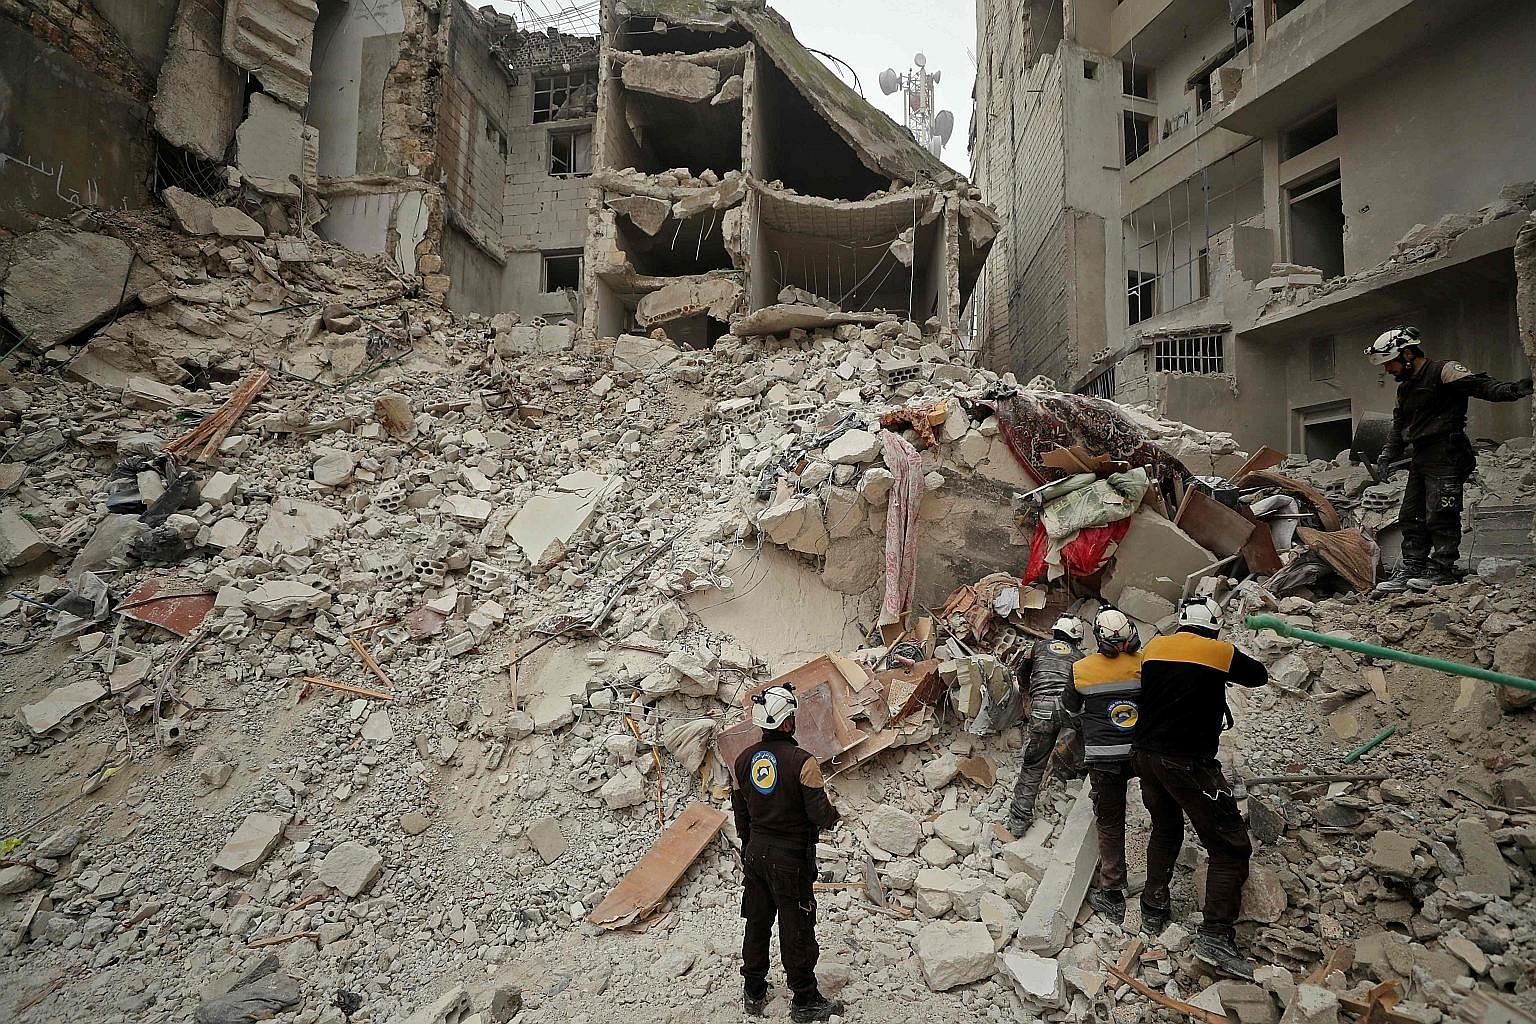 Rescue workers searching for victims amid the rubble of a building that was hit during an air strike by Syrian forces on the rebel-held town of Ariha in the northern countryside of Syria's Idlib province yesterday. Syria has pressed on with its offen